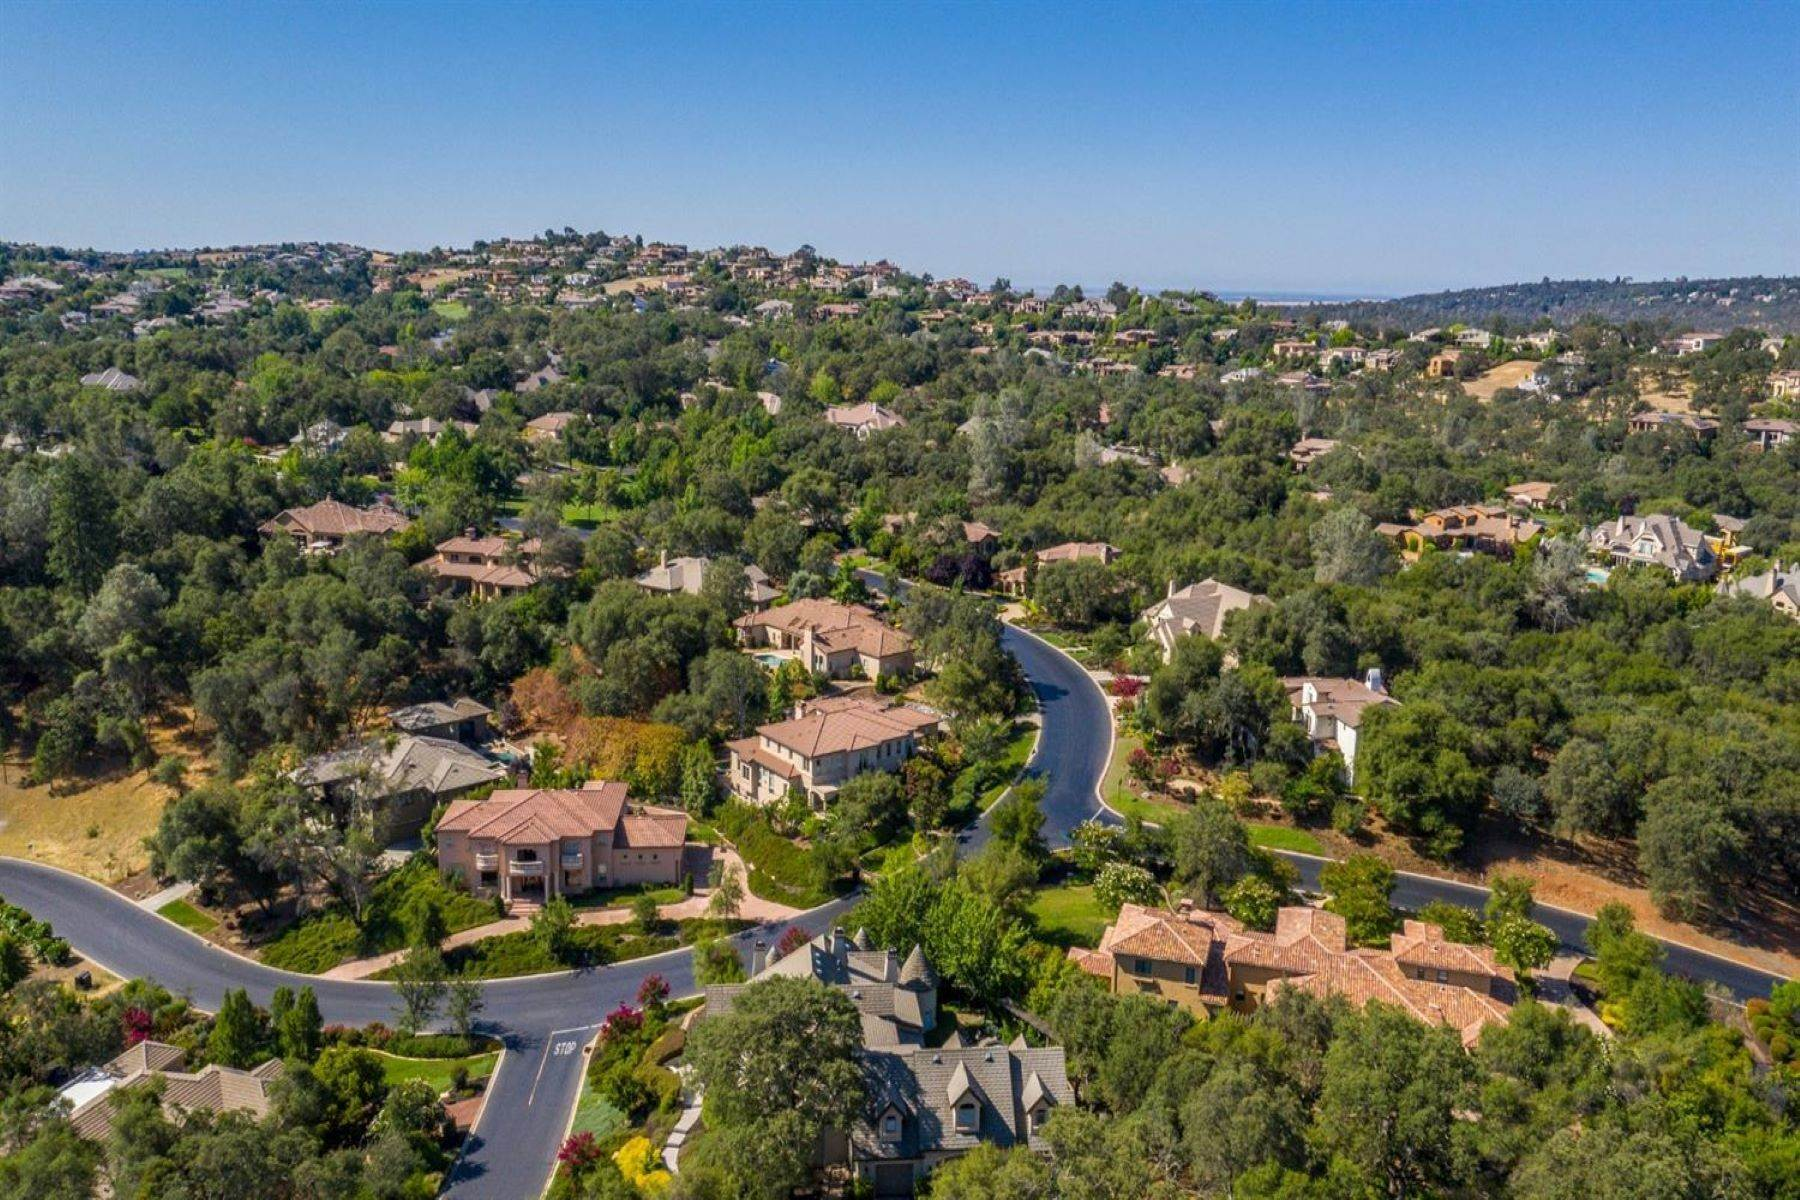 3. Land for Sale at 0 Lot 123 Greyson Creek, El Dorado Hills, CA, 95762 4921 Greyson Creek El Dorado Hills, California 95762 United States